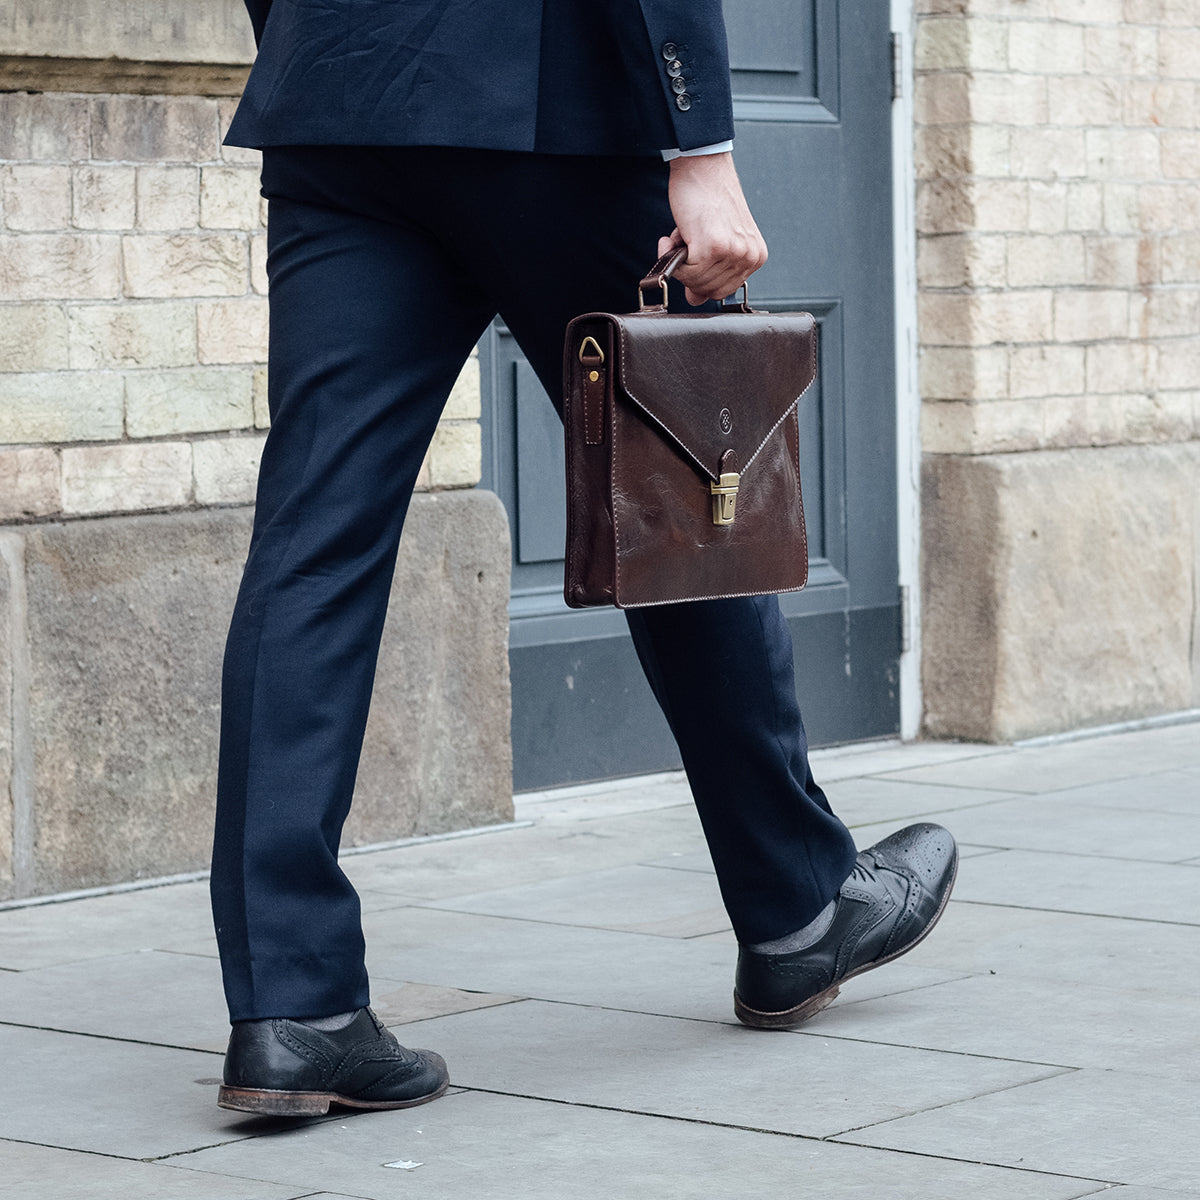 Image 8 of the 'Lorenzo' Chestnut Veg-Tanned Slim Briefcase